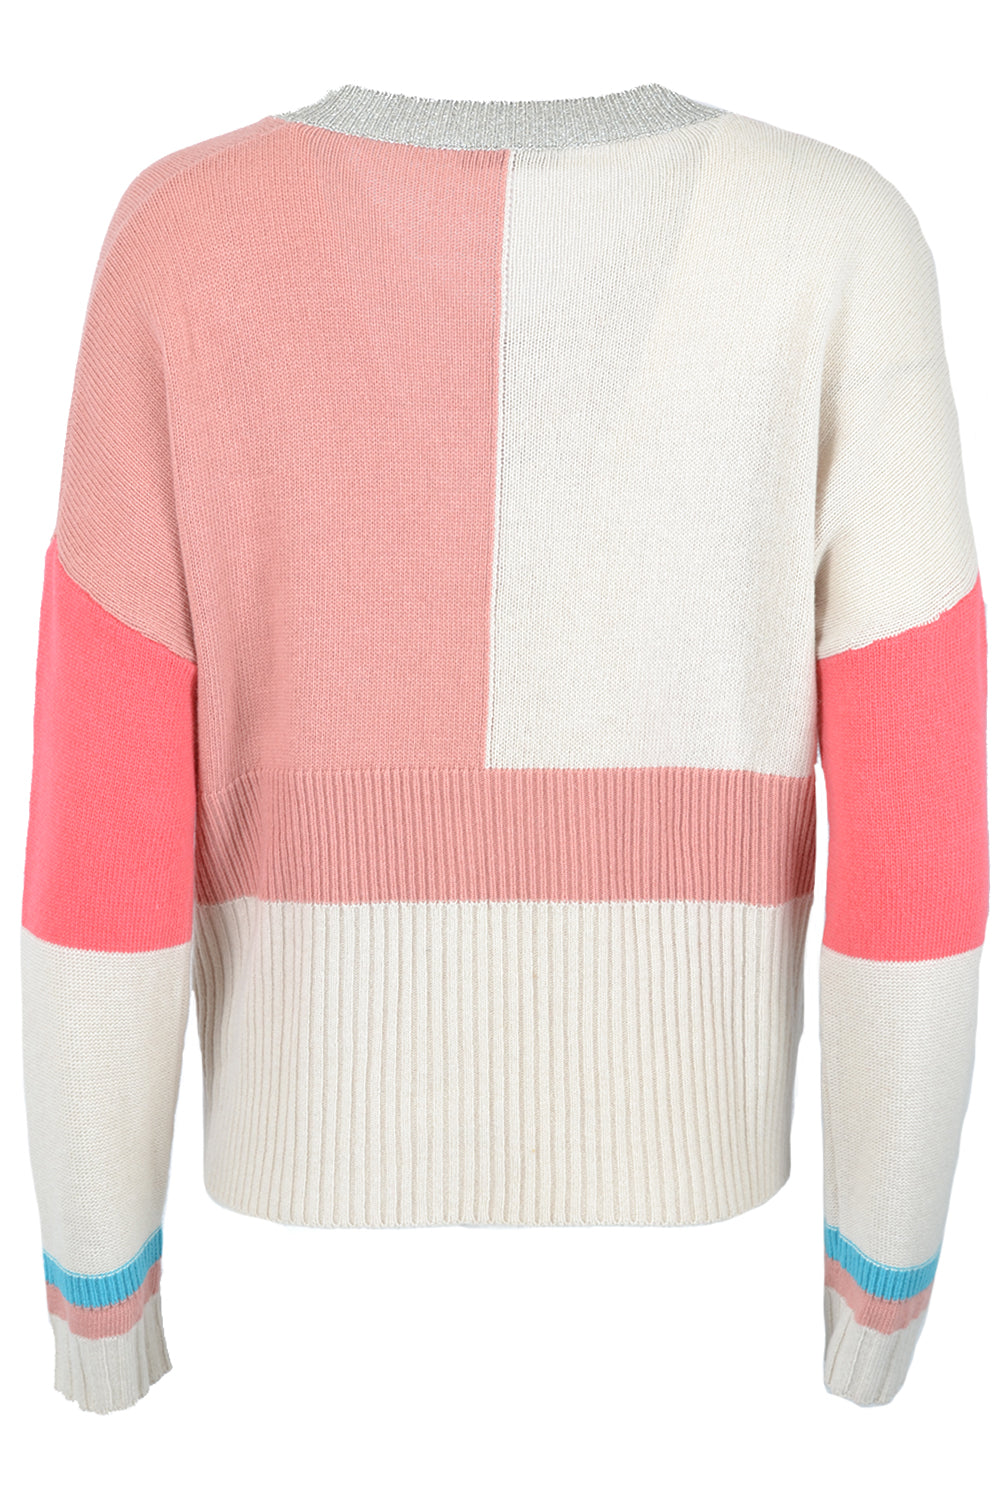 Pour Moi V Neck Stripe Sequinned Sweater Rose Pink